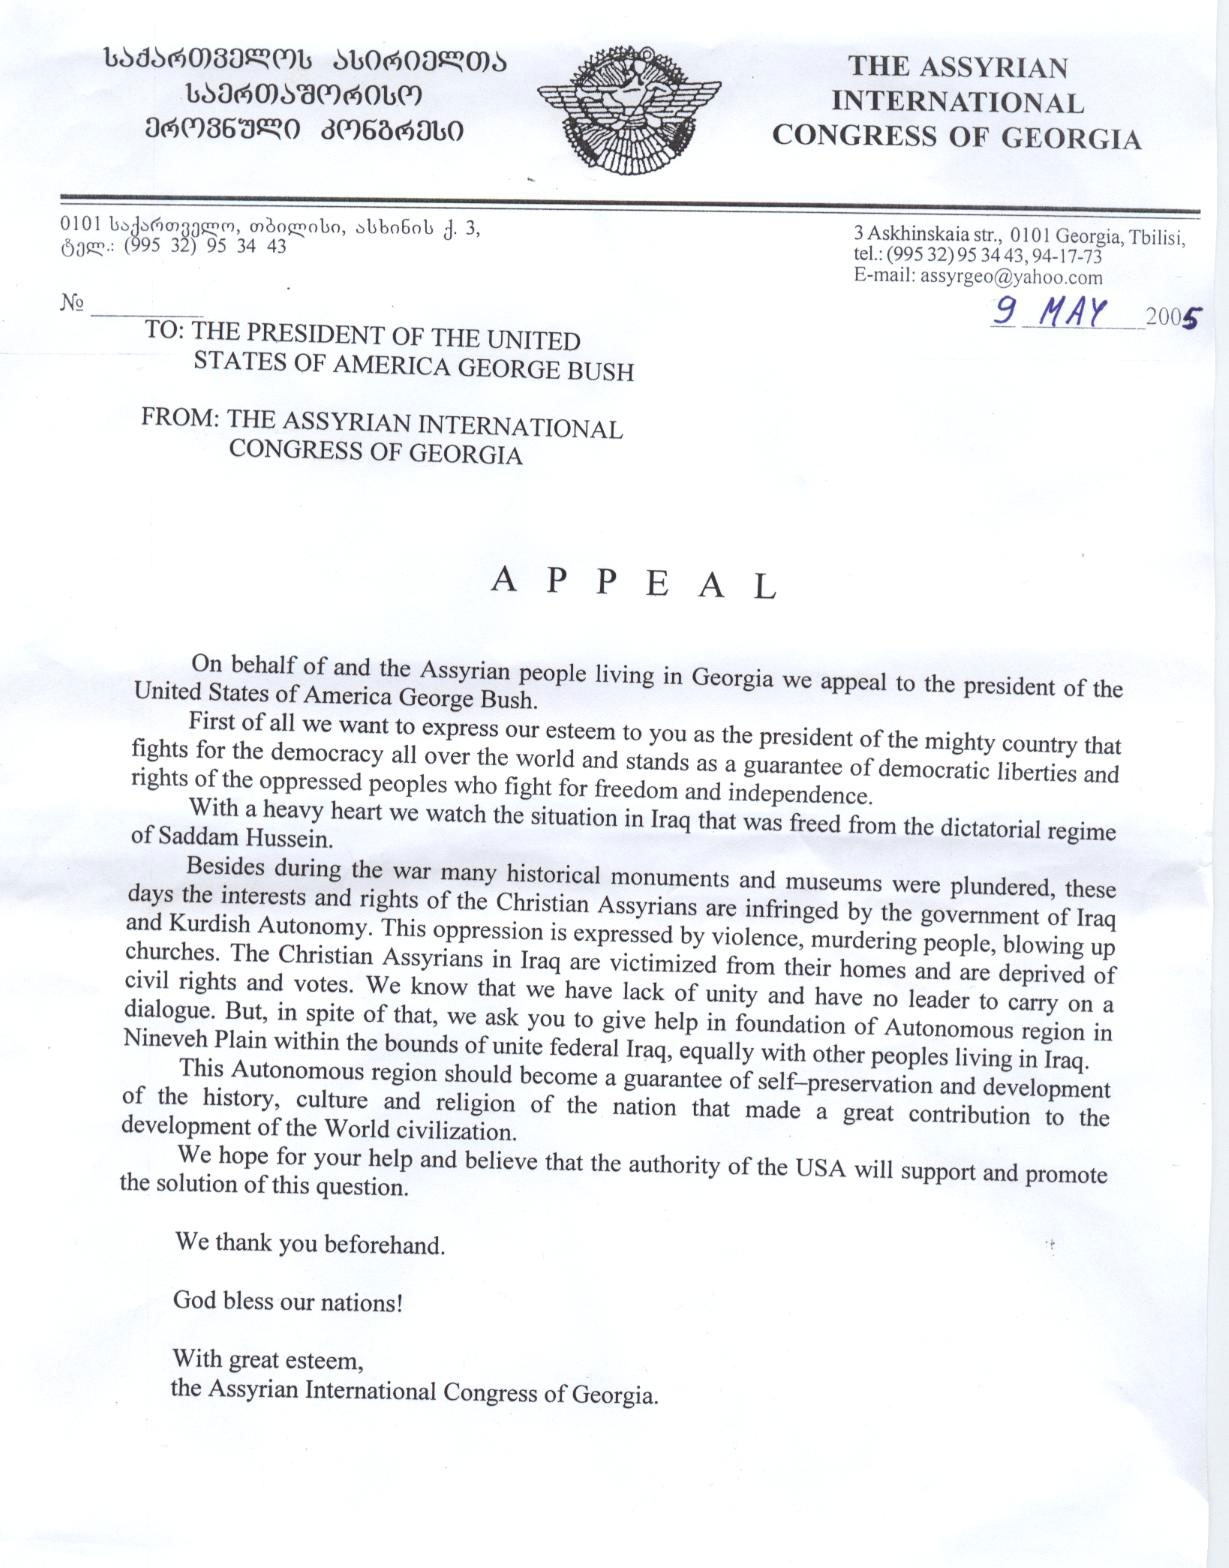 letter of appeal sample for college